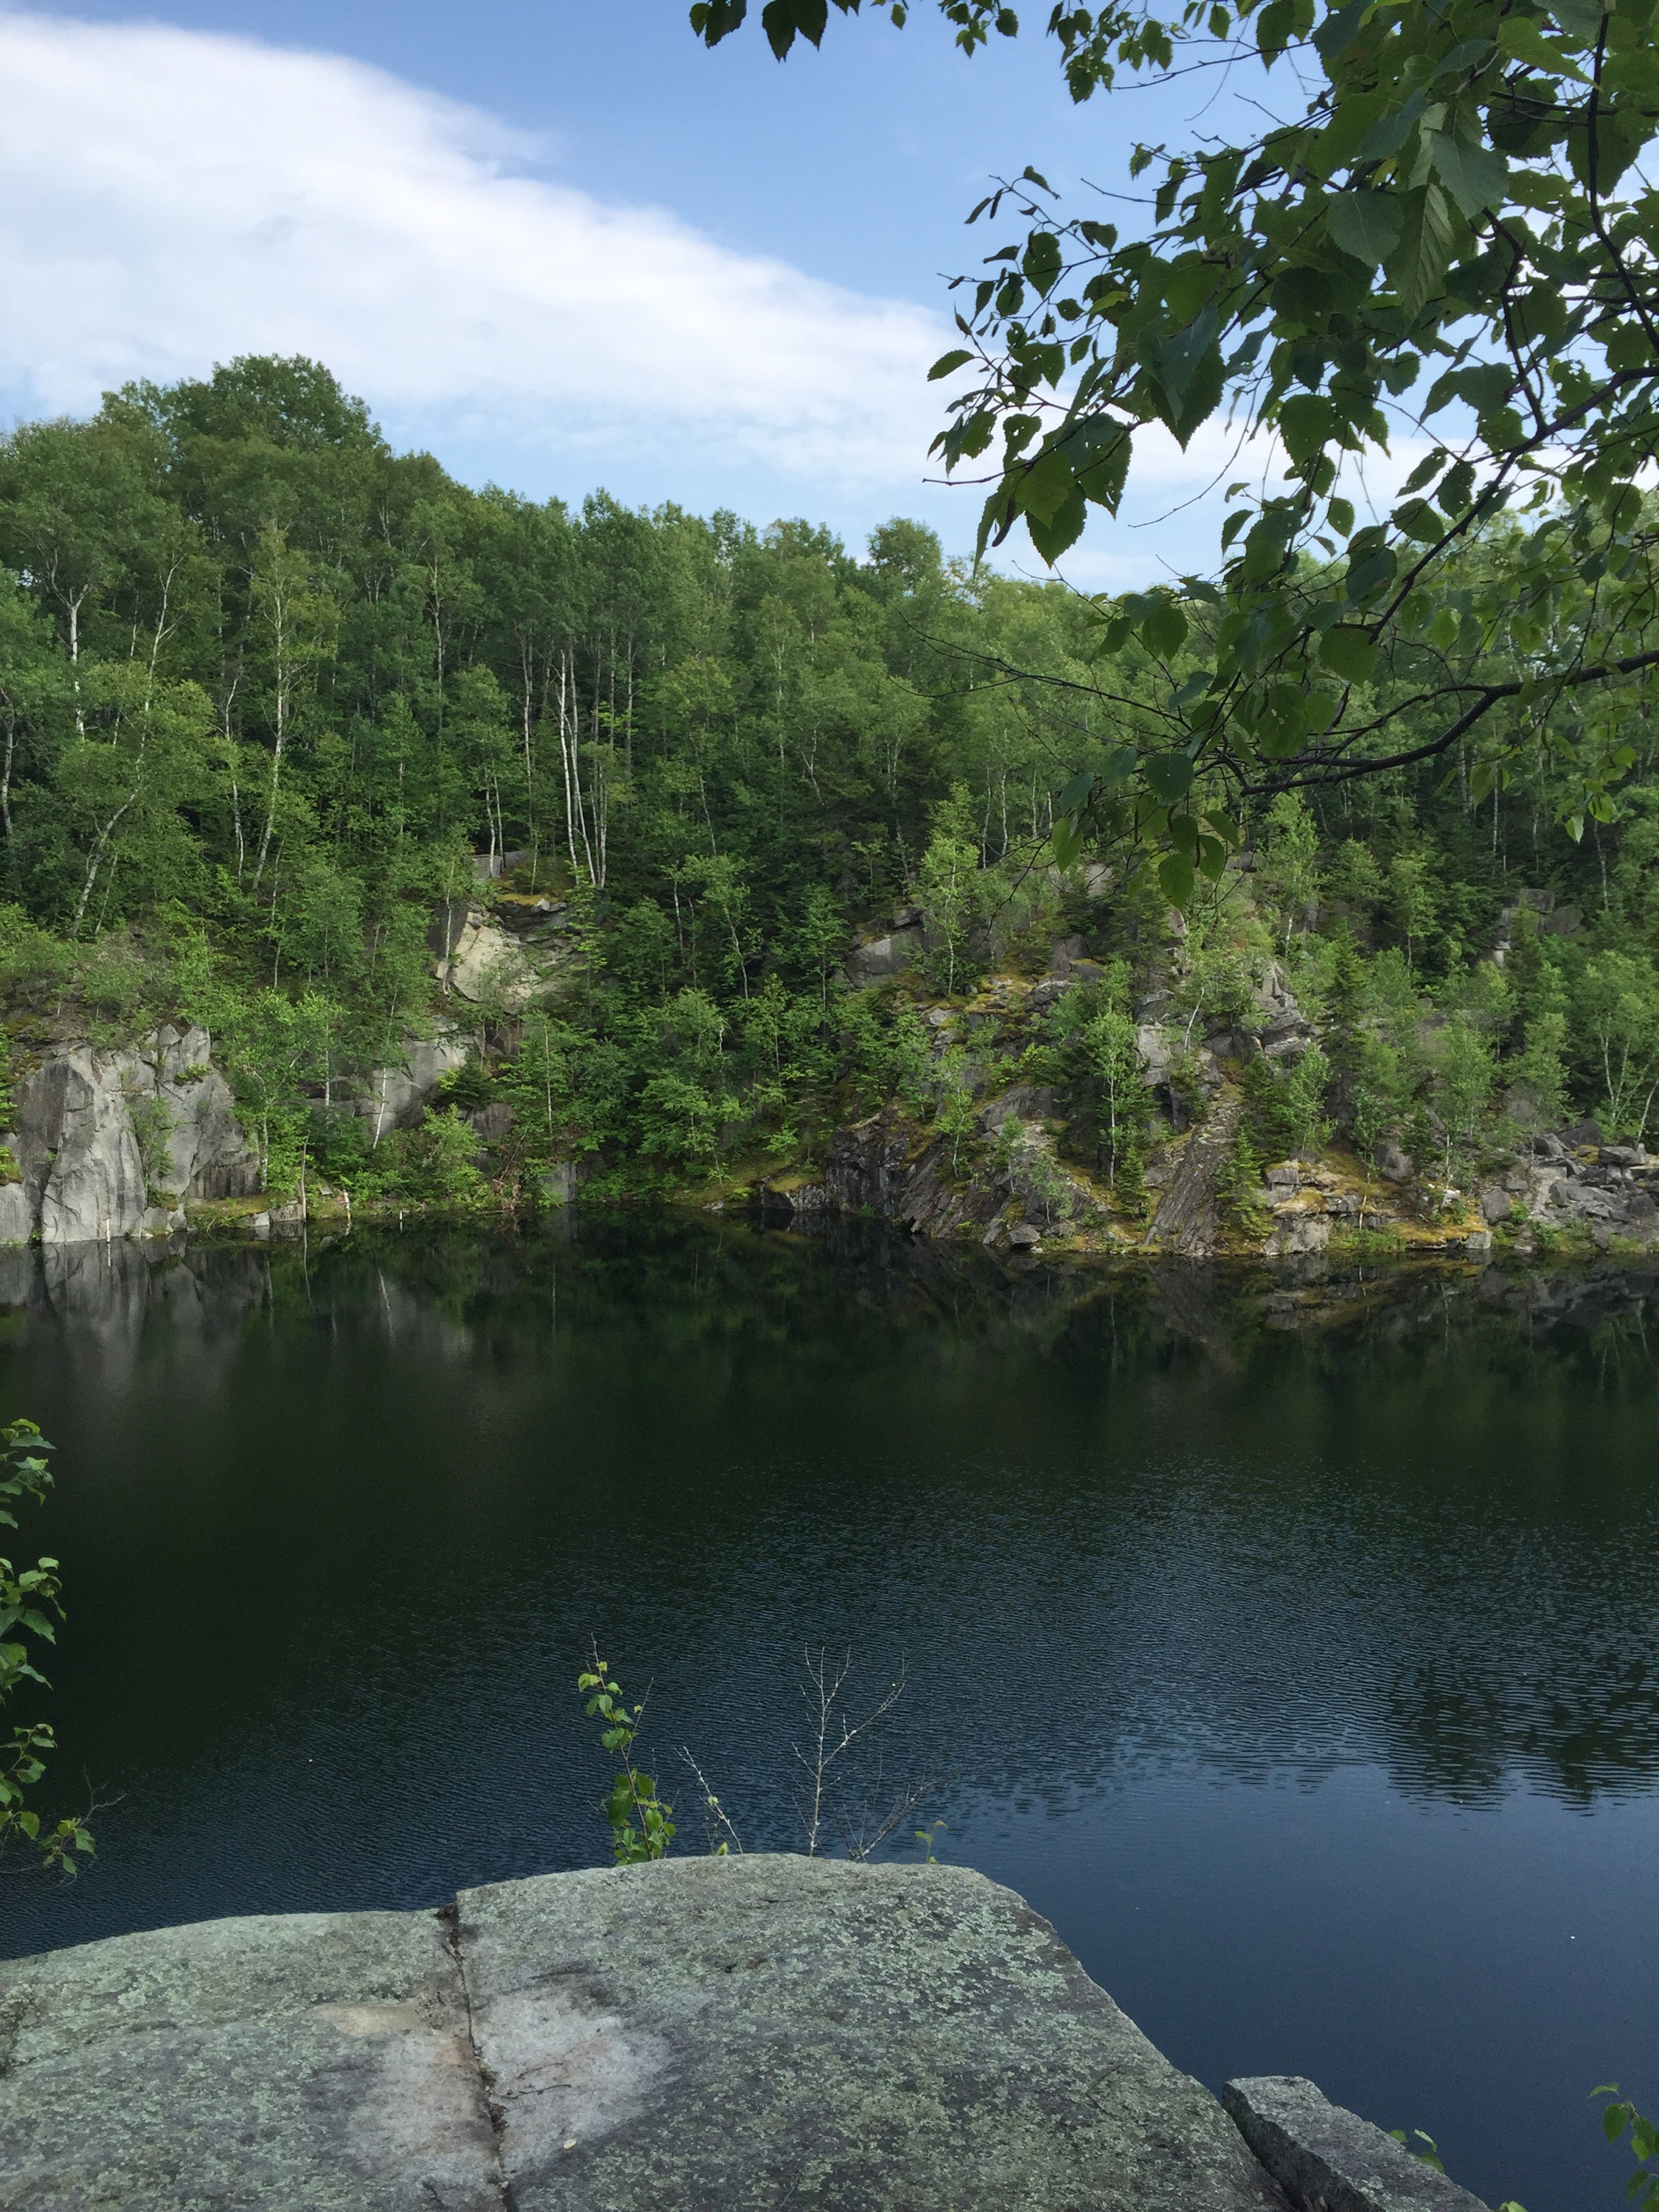 vista overlooking a stone quarry